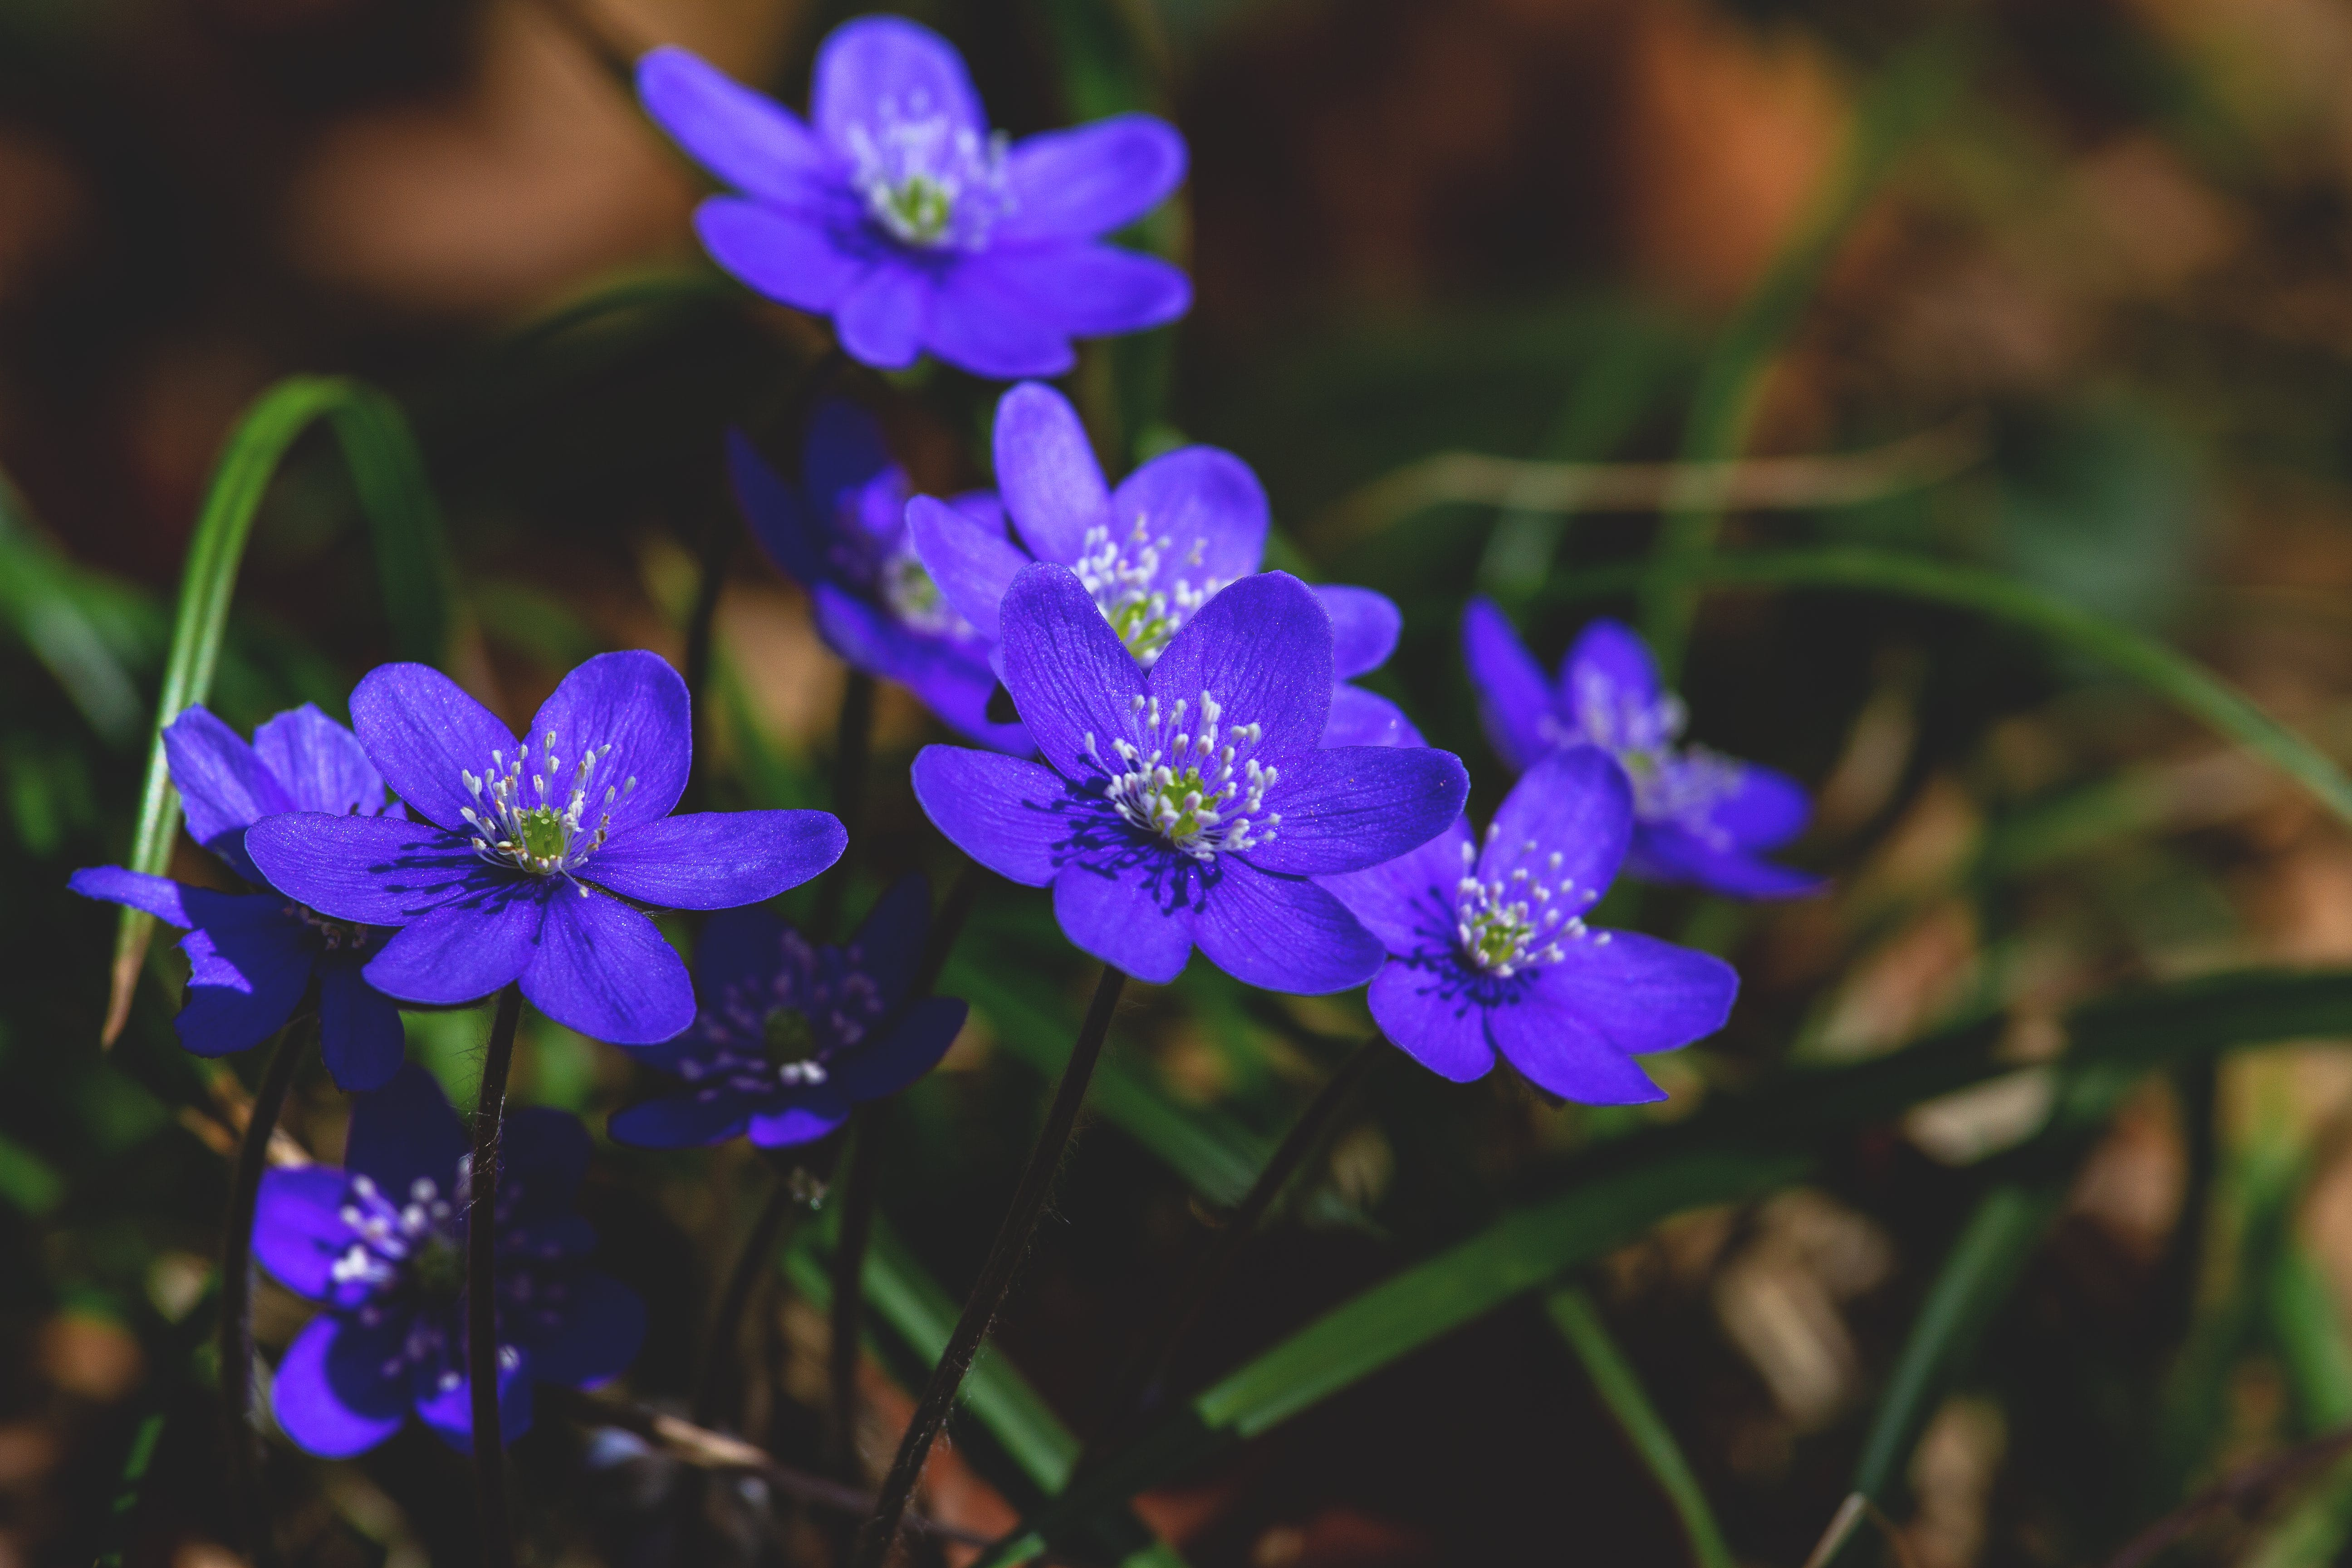 Close View of Purple Flowers